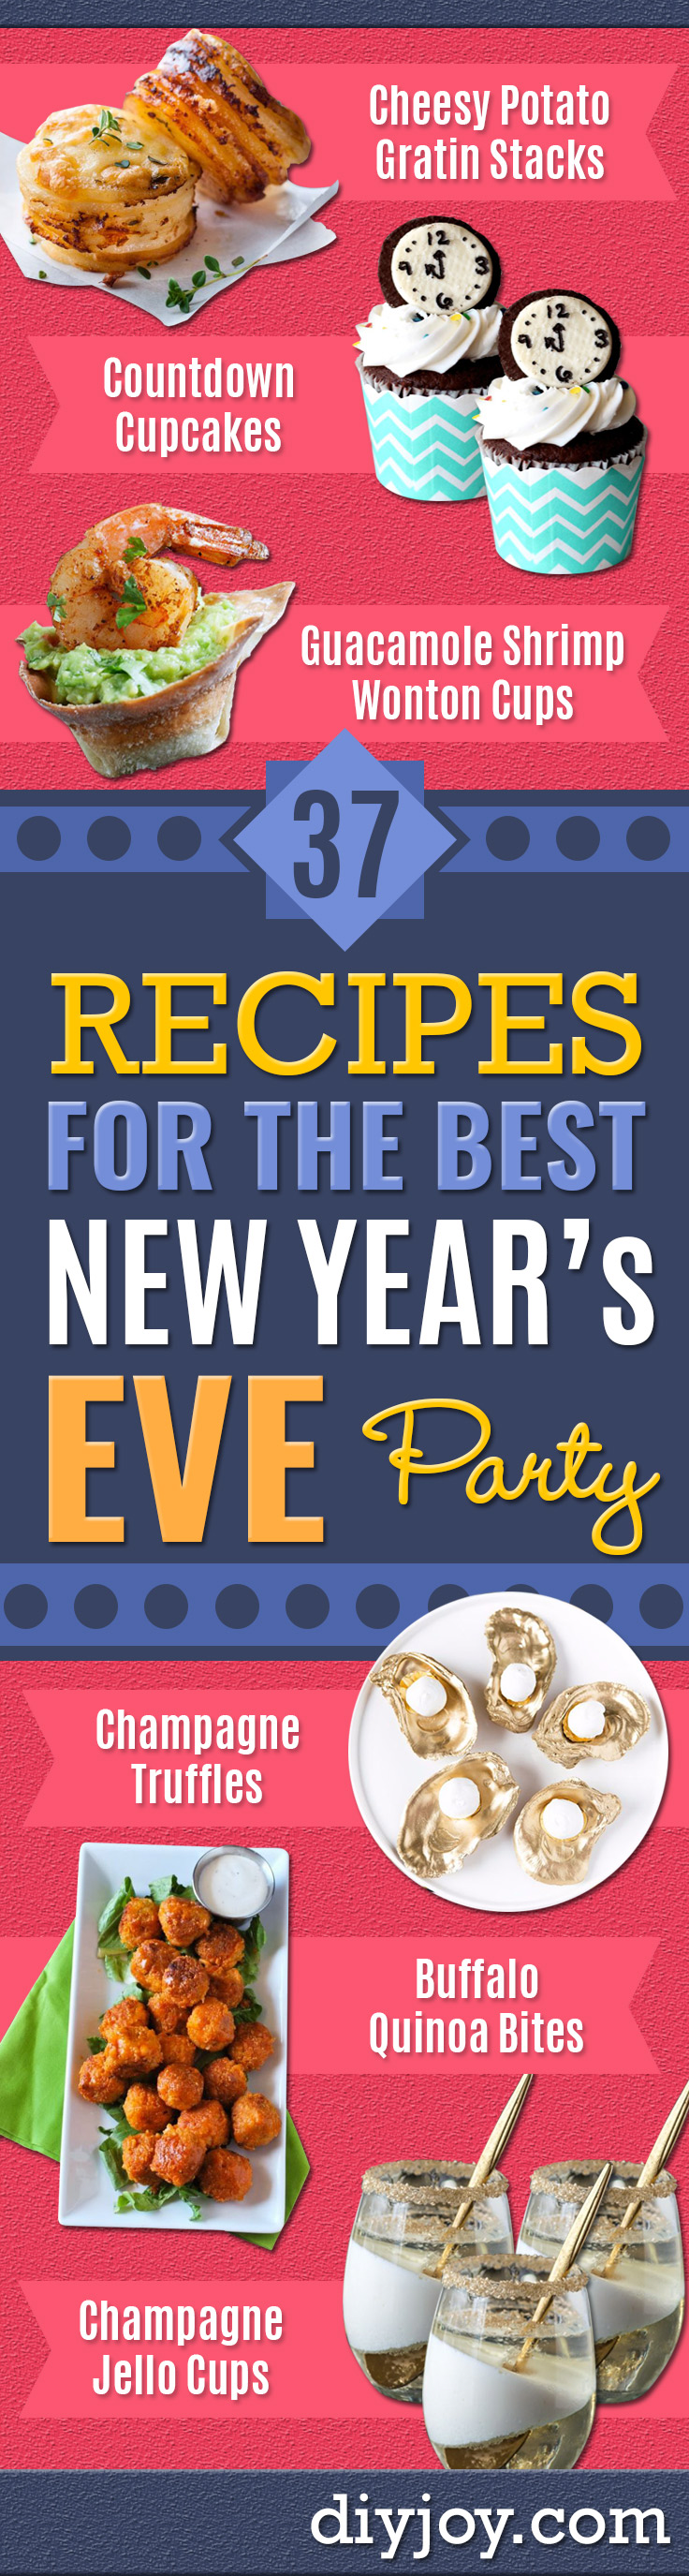 New Years Eve Party Recipes - Best New Year Drinks, Cocktails, Appetizers and Party Foods for Your New Year's Eve Celebration - Quick Desserts, Snacks, Dips, Finger Foods, Cake and Champagne Toast Recipe Ideas - Fun and Easy Foods To Serve For A Crowd